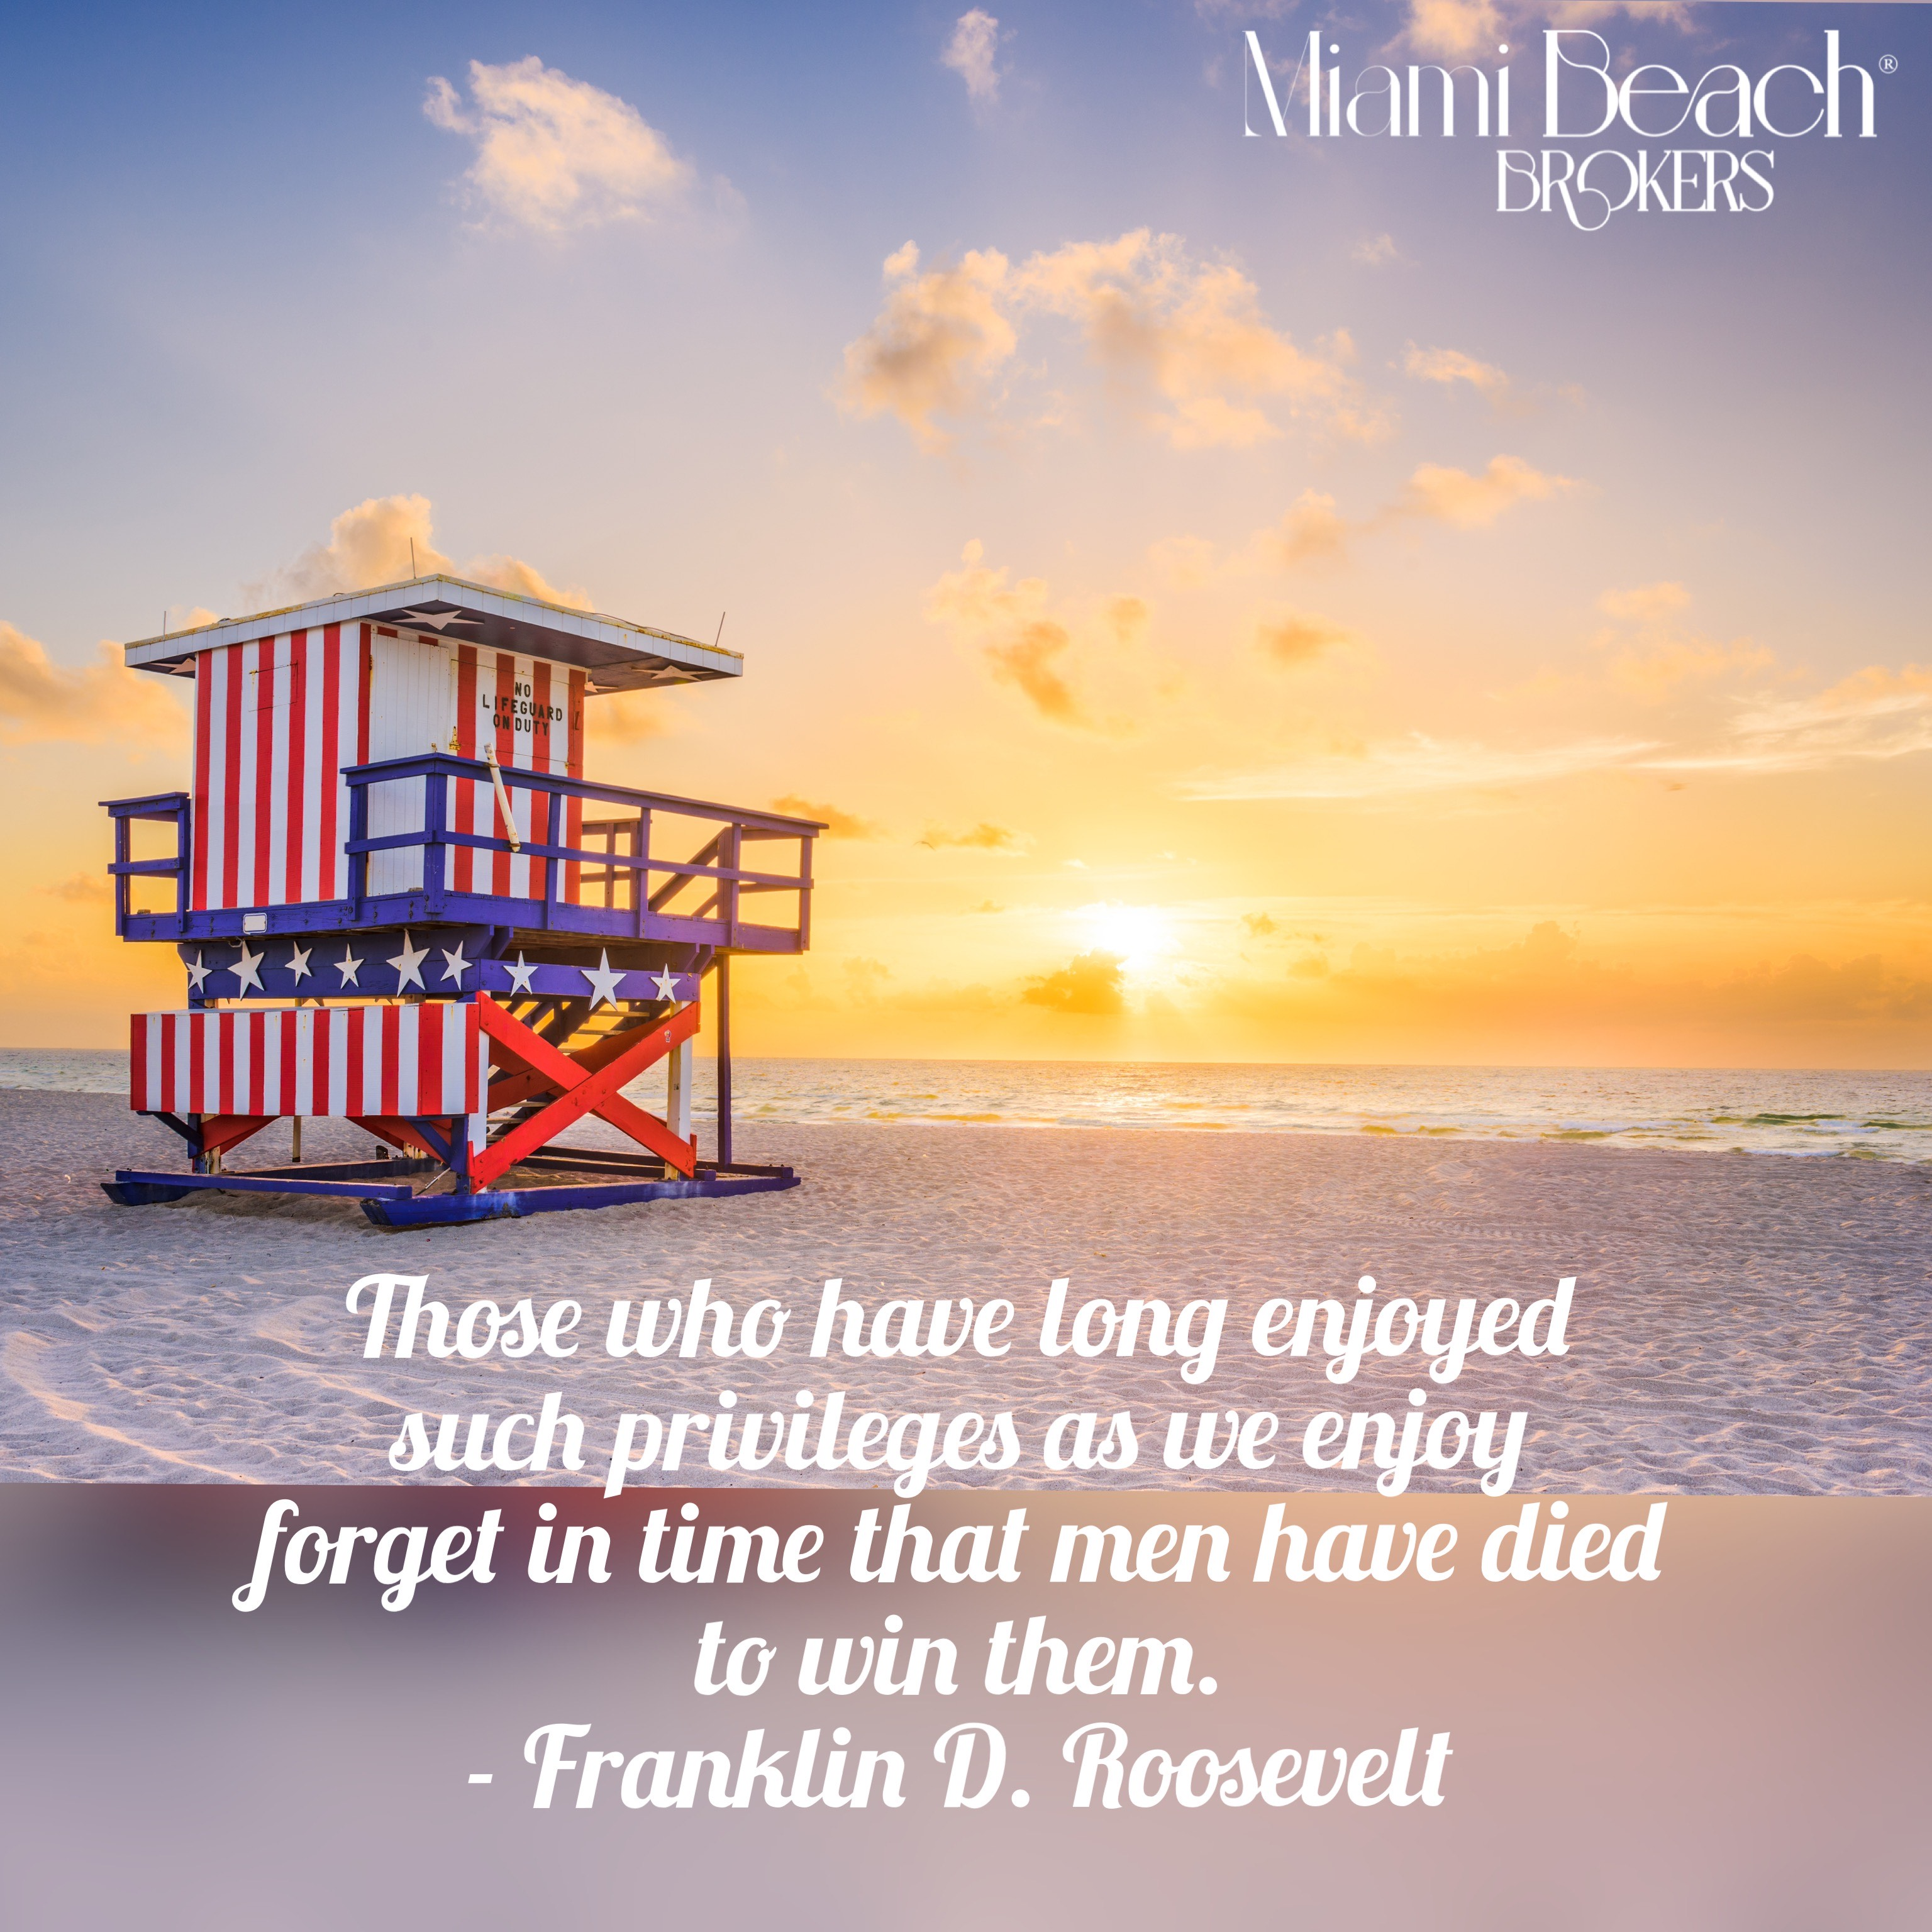 Memorial Day 2021 - Personal Note from Miami Beach Broker - Quote from Franklin D. Roosevelt